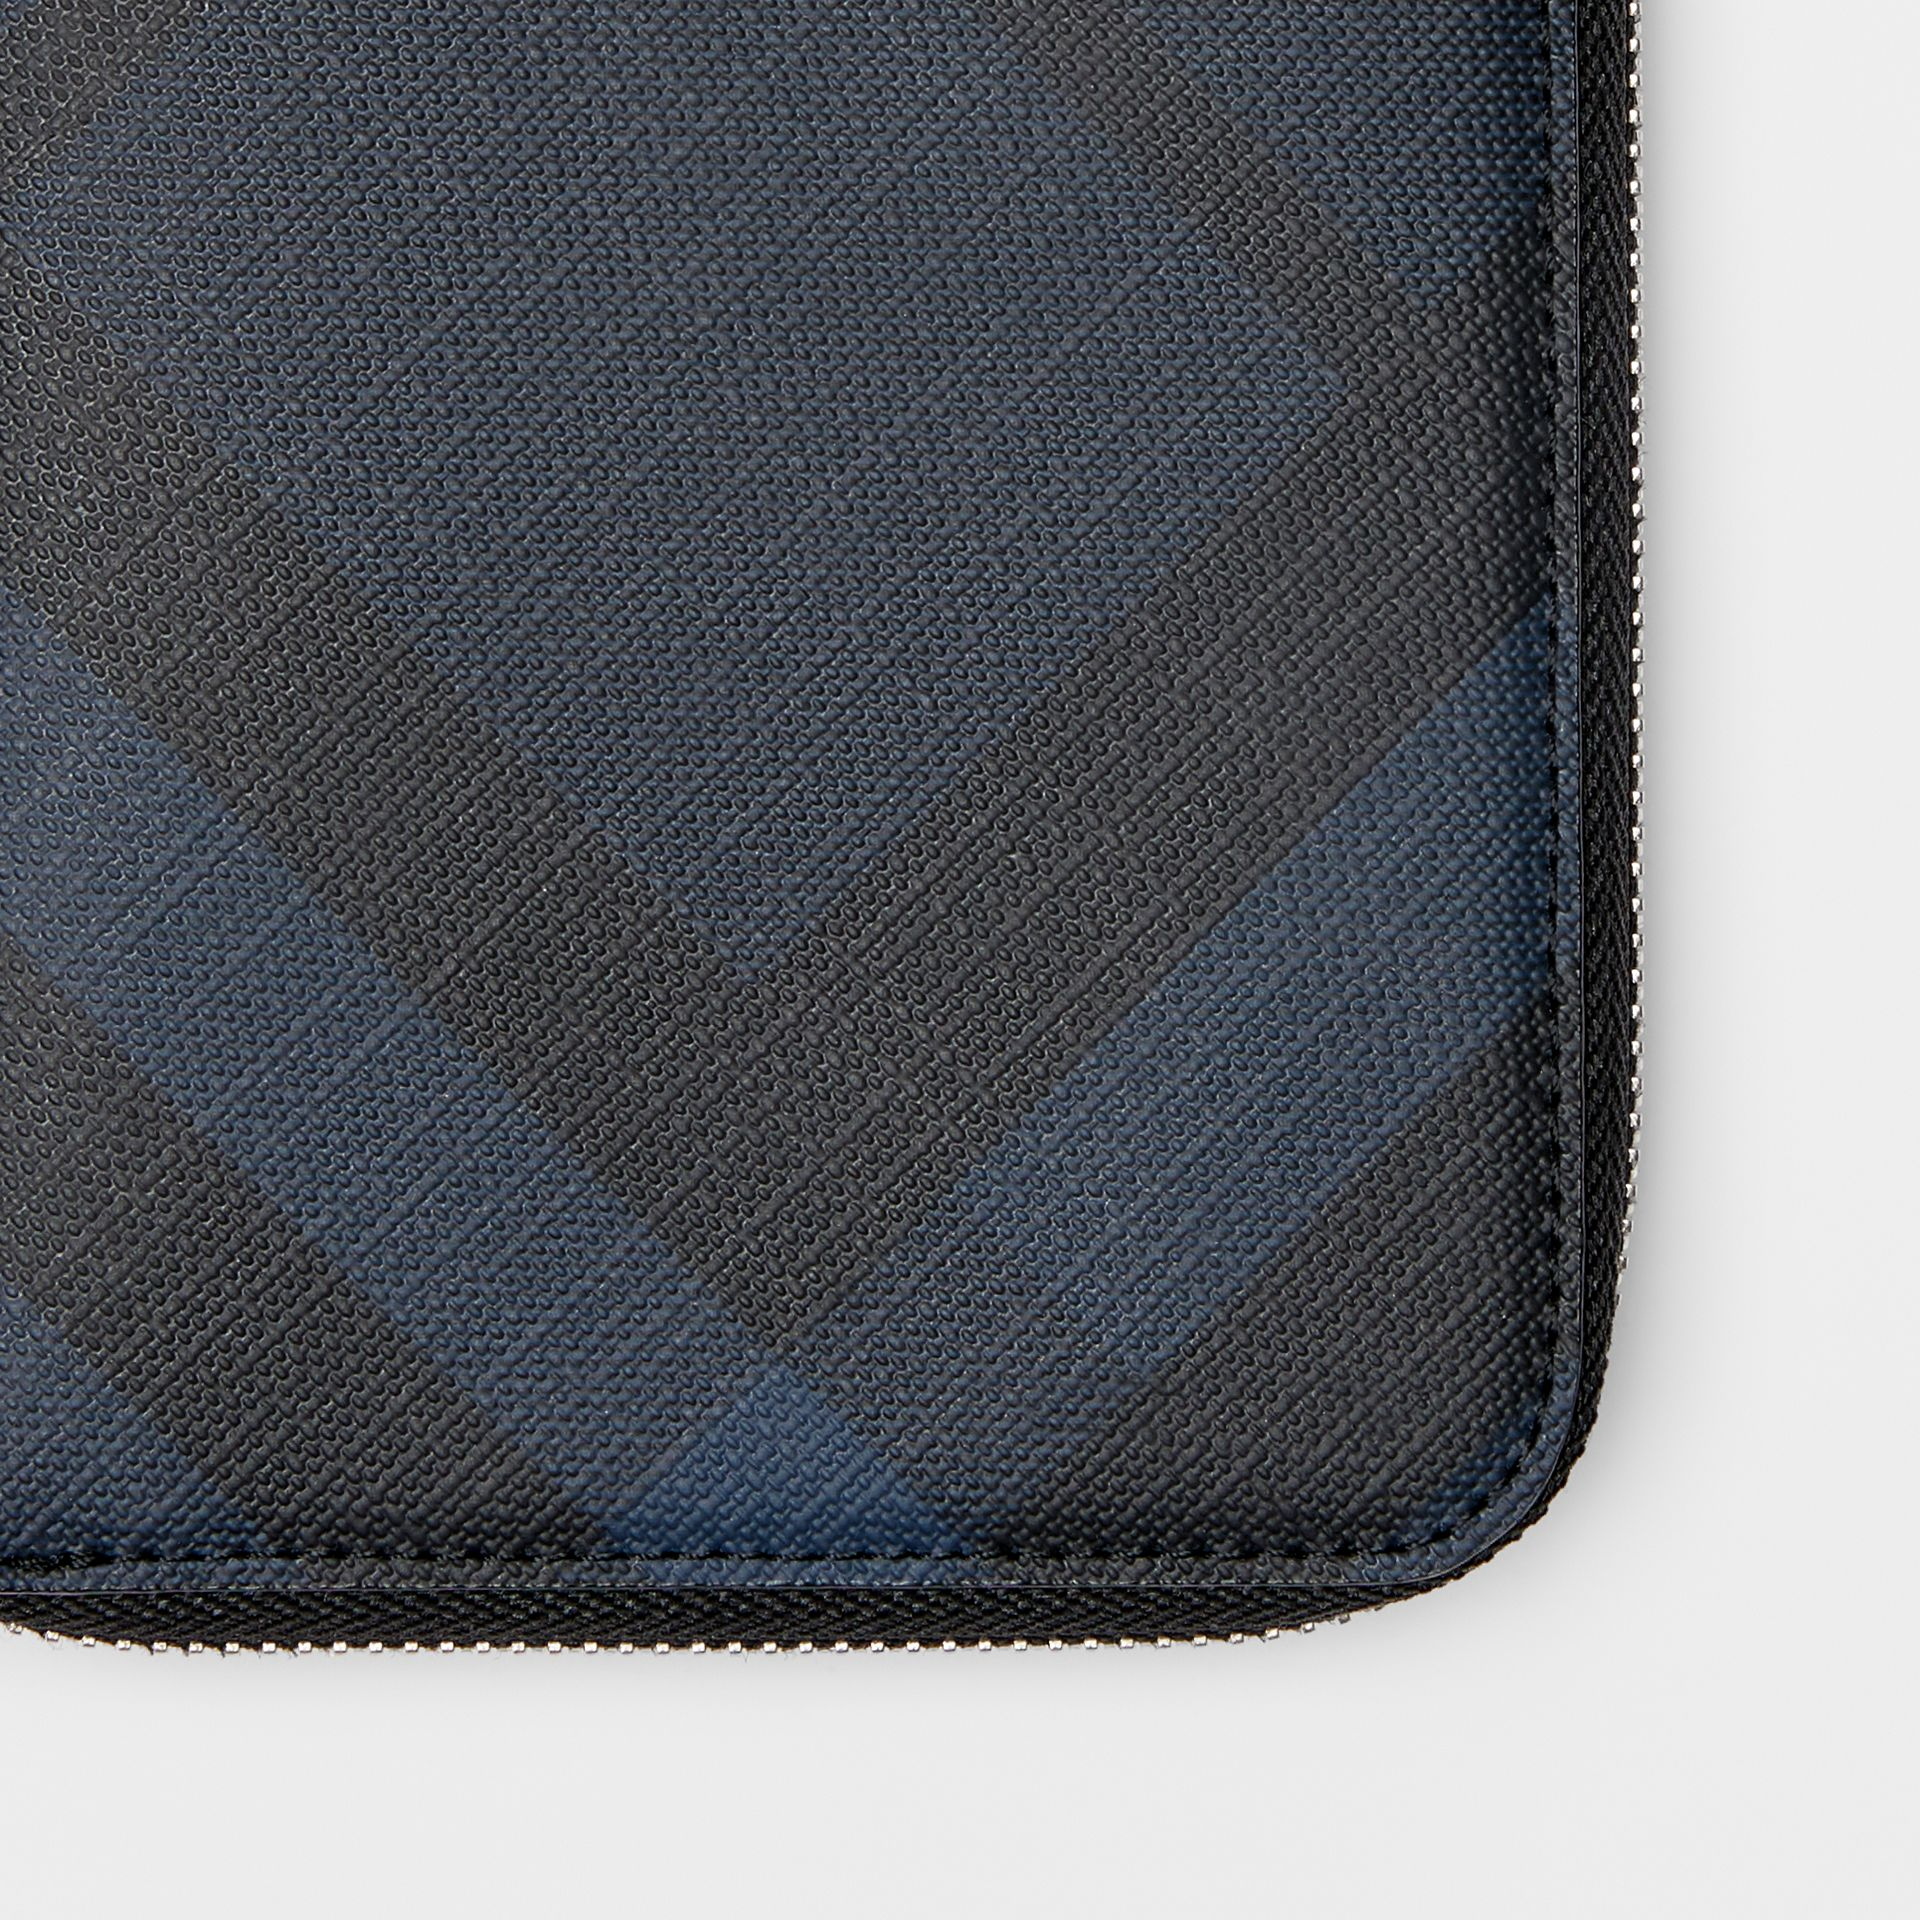 London Check and Leather Ziparound Wallet in Navy/black - Men | Burberry - gallery image 1